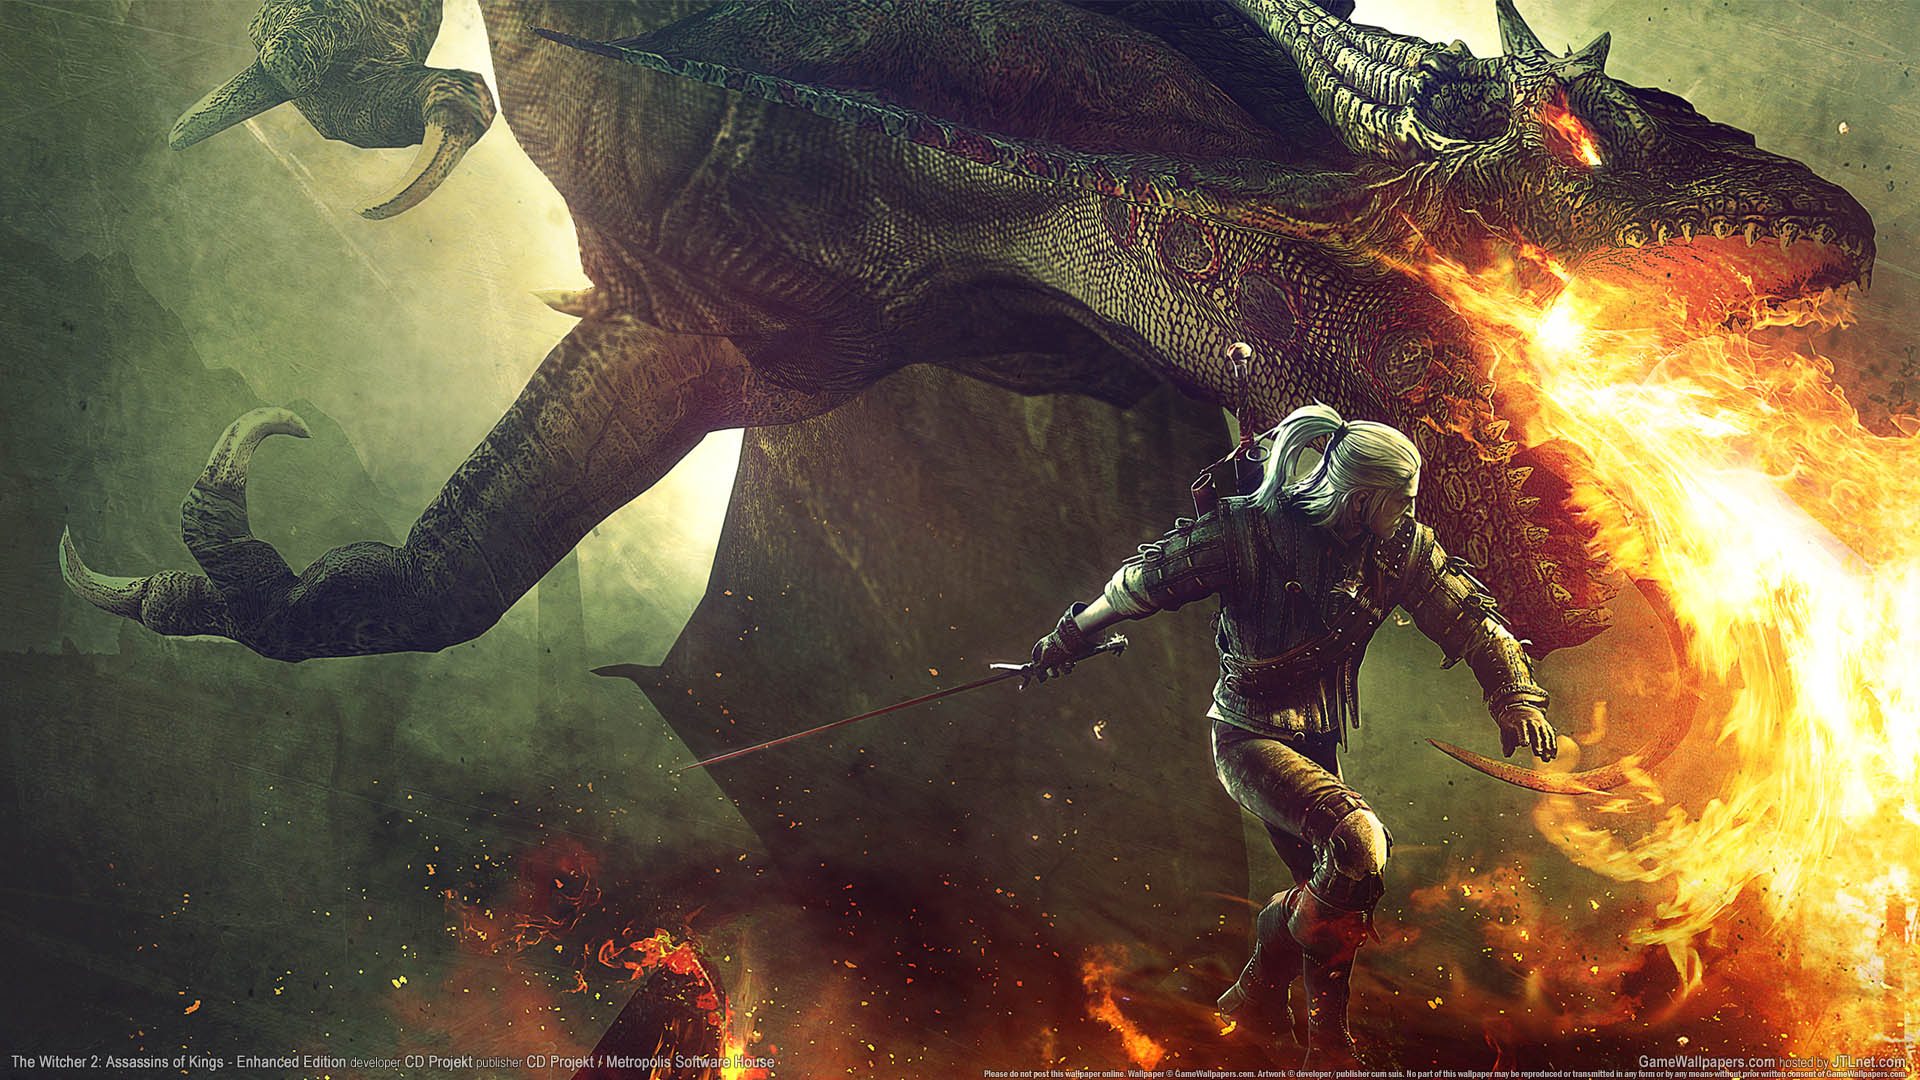 The Witcher 2: Assassins of Kings - Enhanced Edition wallpaper 01 1920x1080